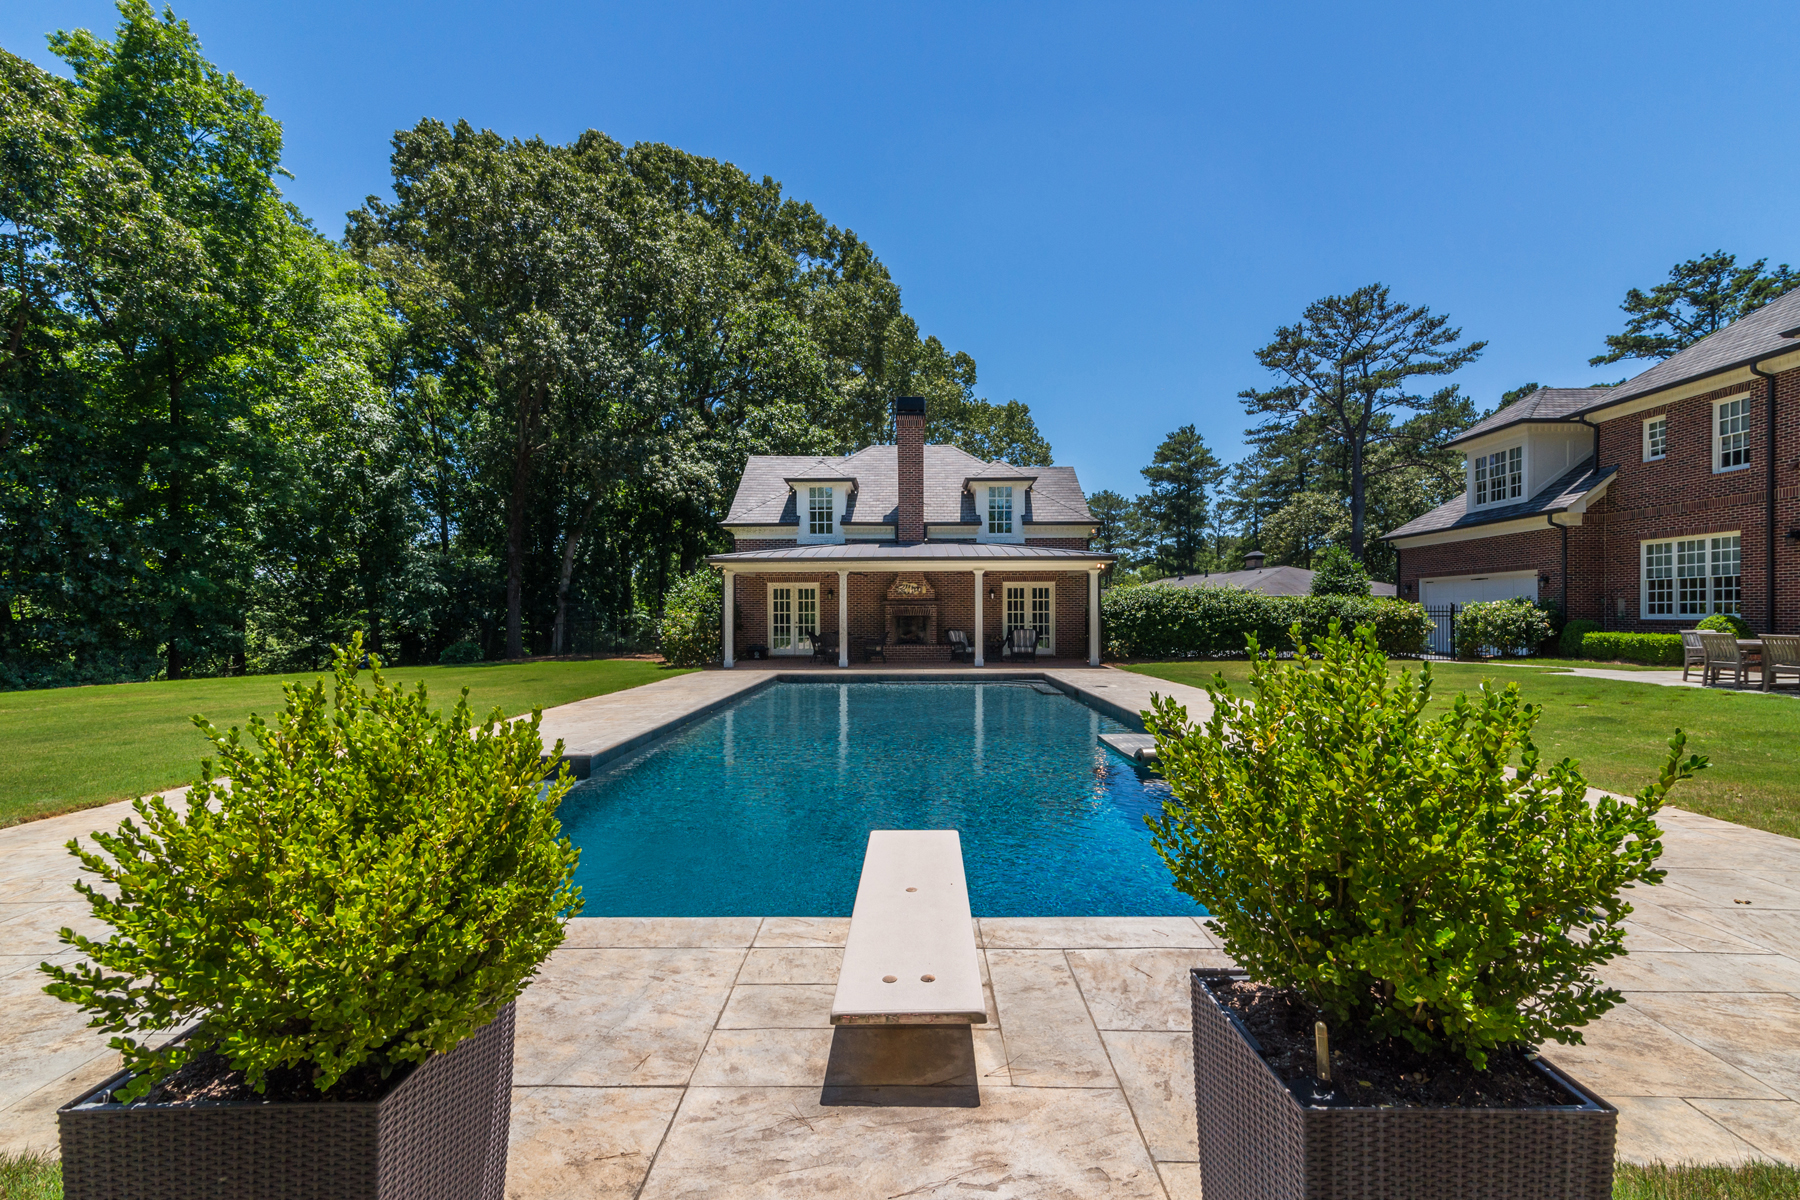 Additional photo for property listing at Beautifully Appointed Home In Buckhead 2761 Ridgewood Road Atlanta, Georgia 30327 United States